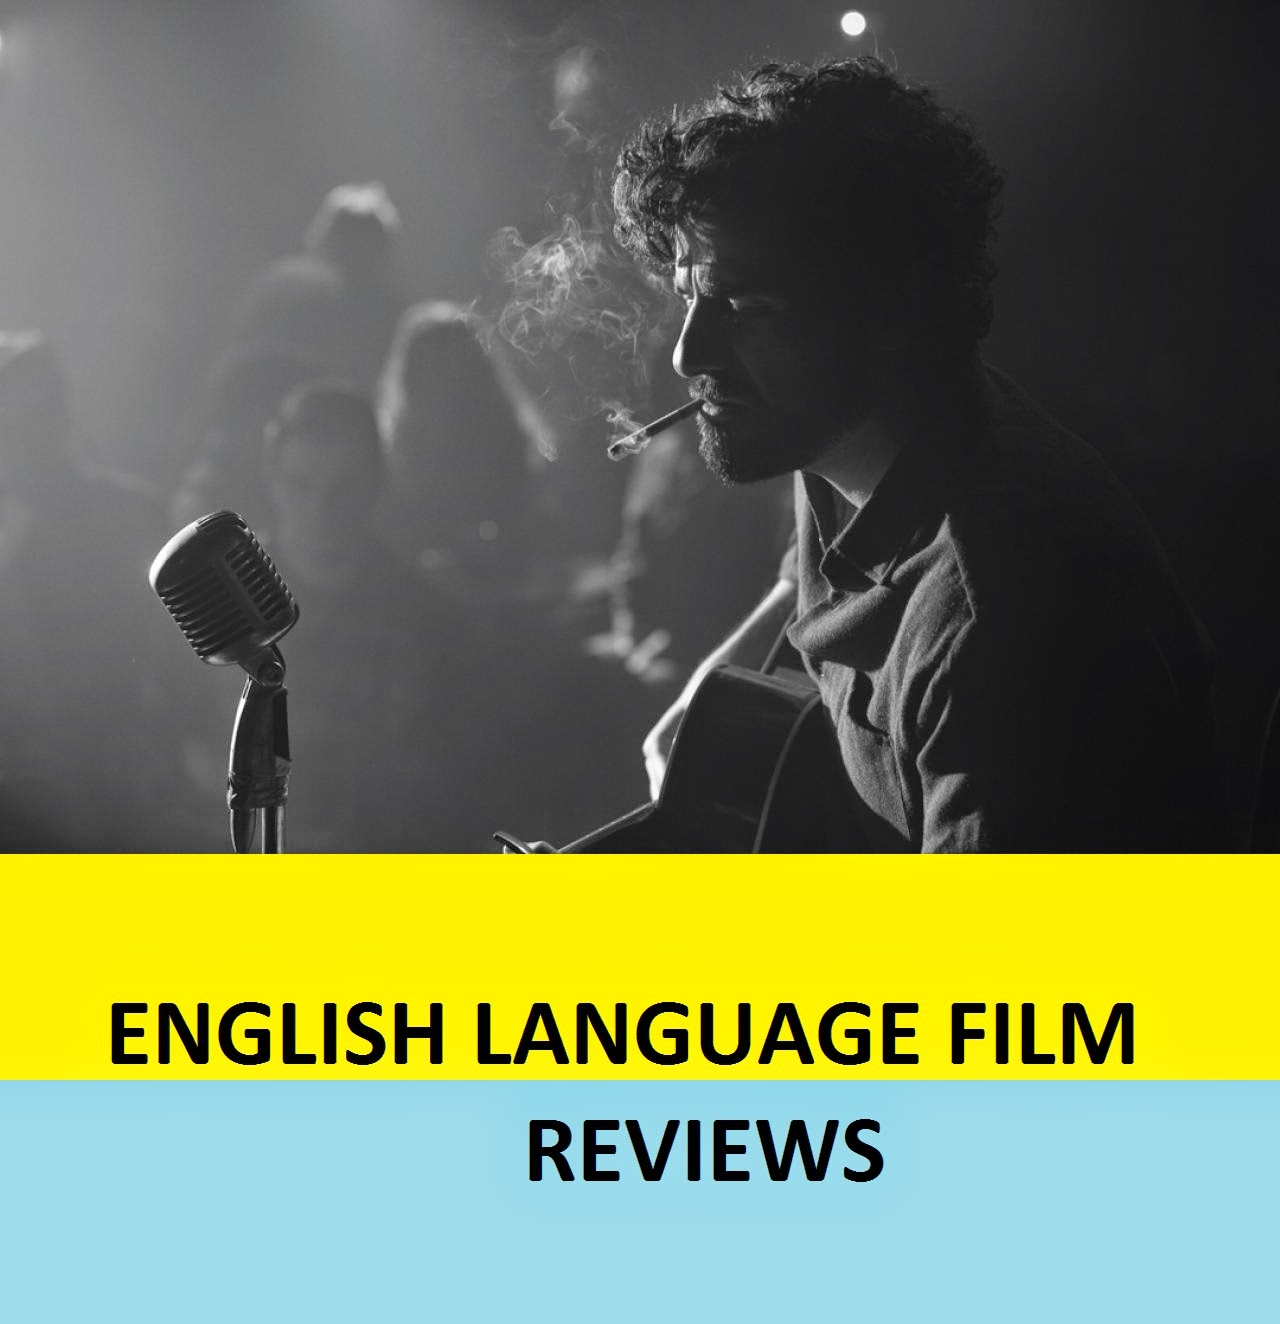 Reviews of English Language Films